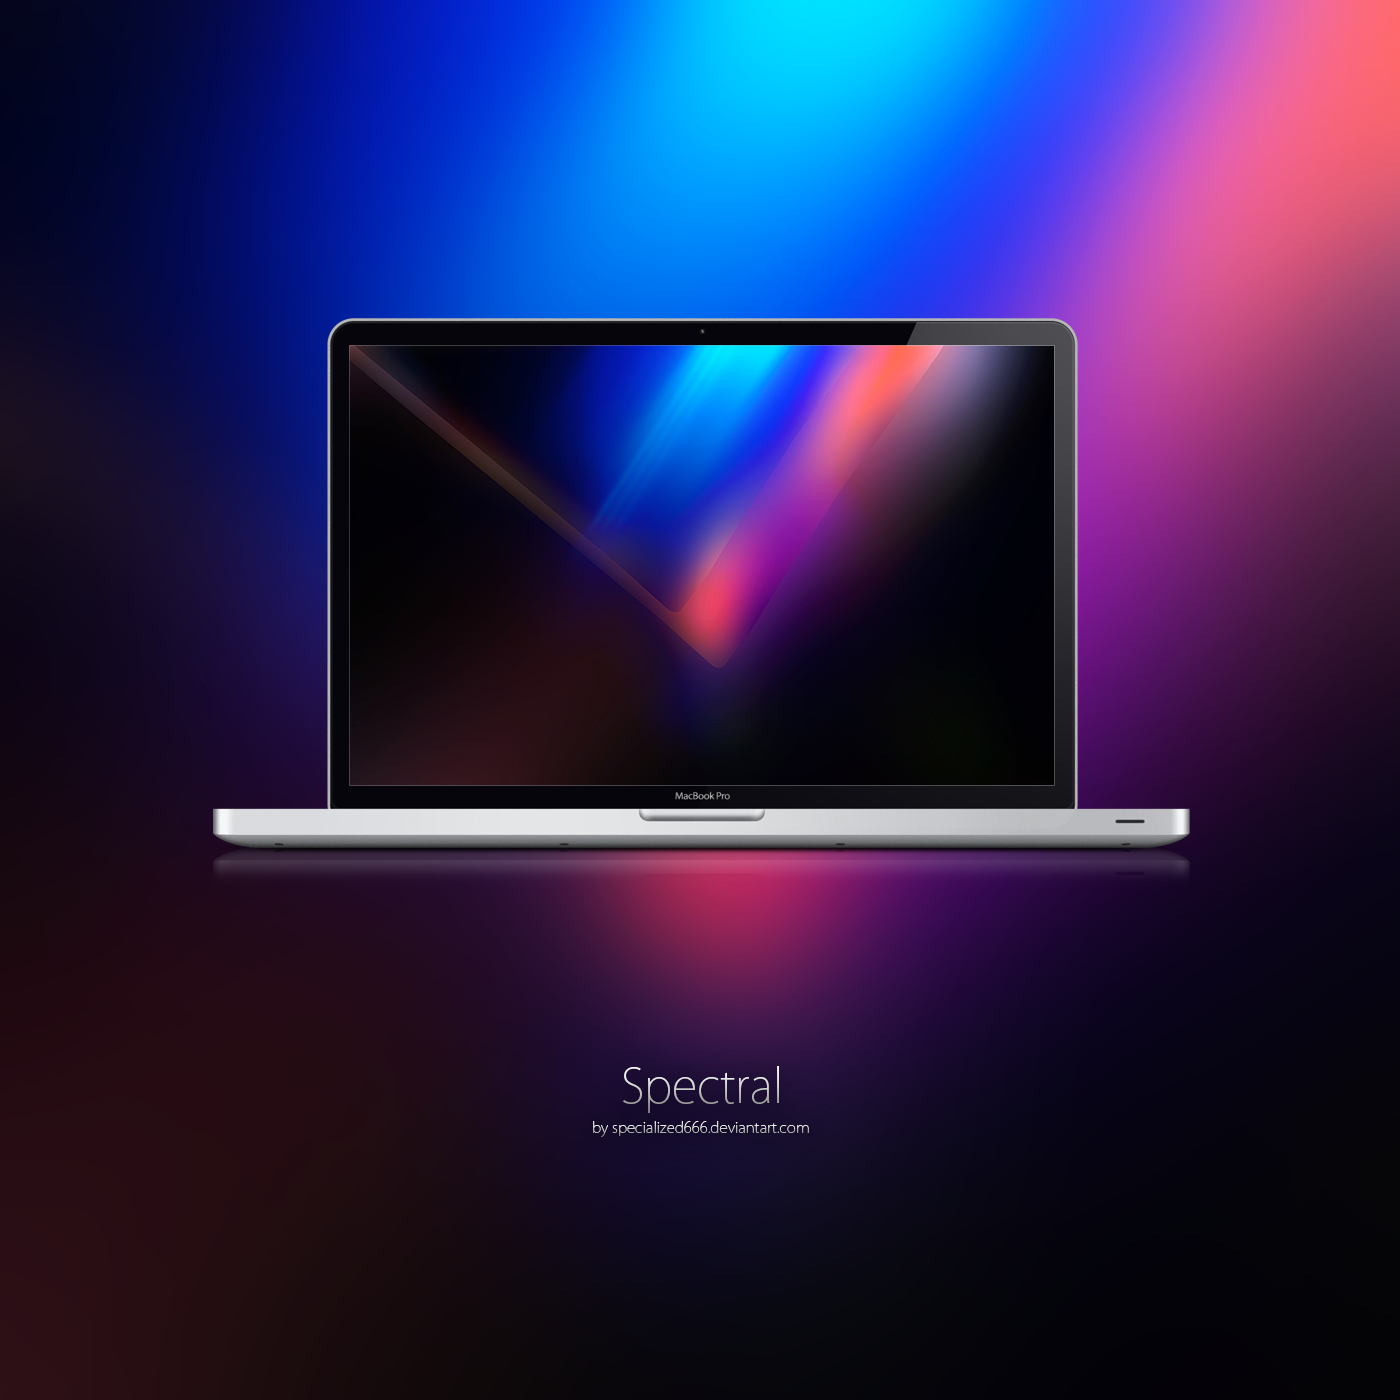 Spectral by specialized666